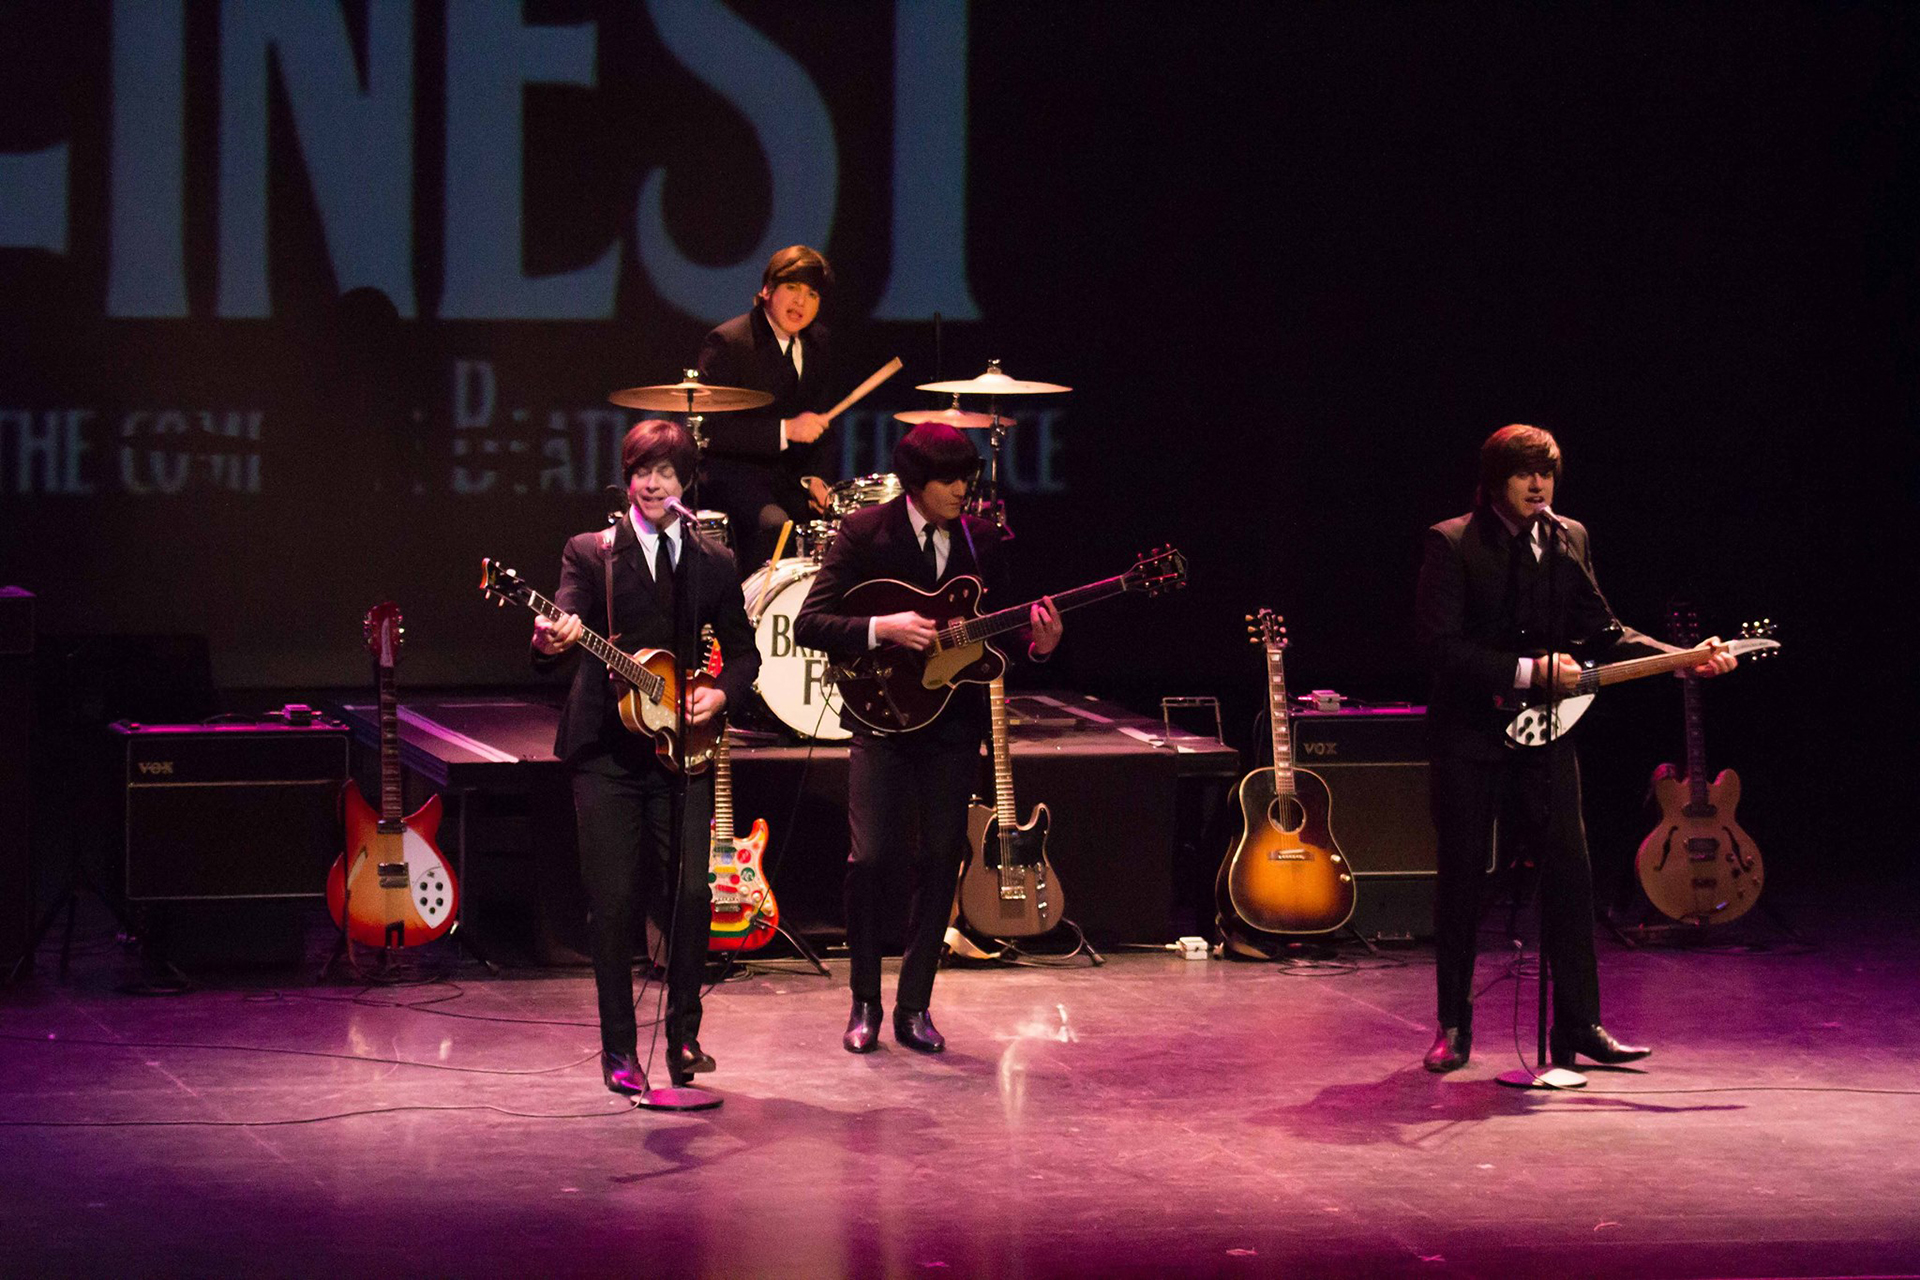 Britain's Finest, a Beatles cover band. (Photo courtesy of the Queen Mary.)